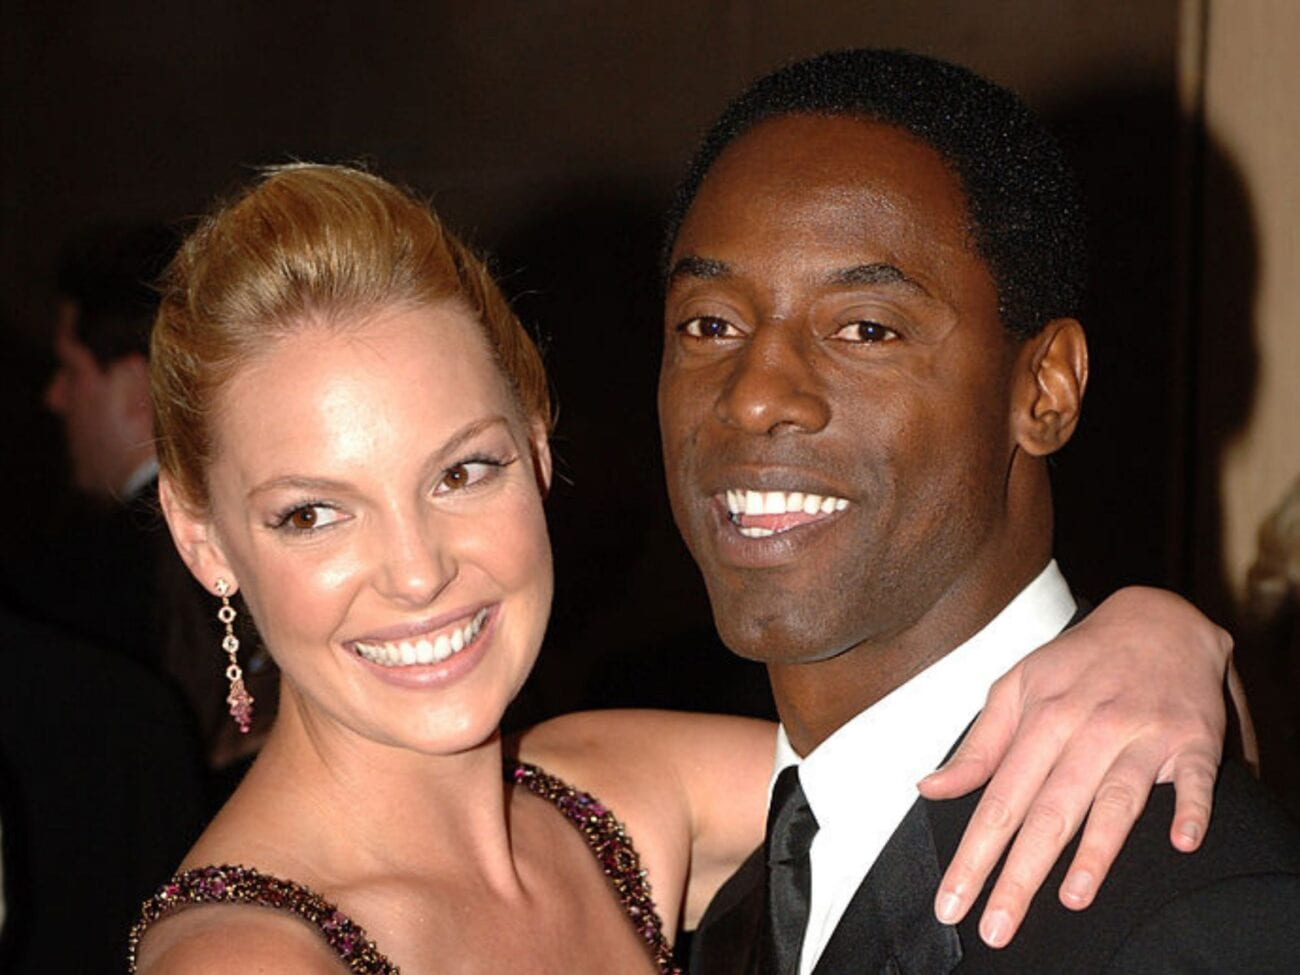 A message on Twitter targeting former 'Grey's Anatomy' star Katherine Heigl (Dr. Izzie Stevens) was posted. What happened?